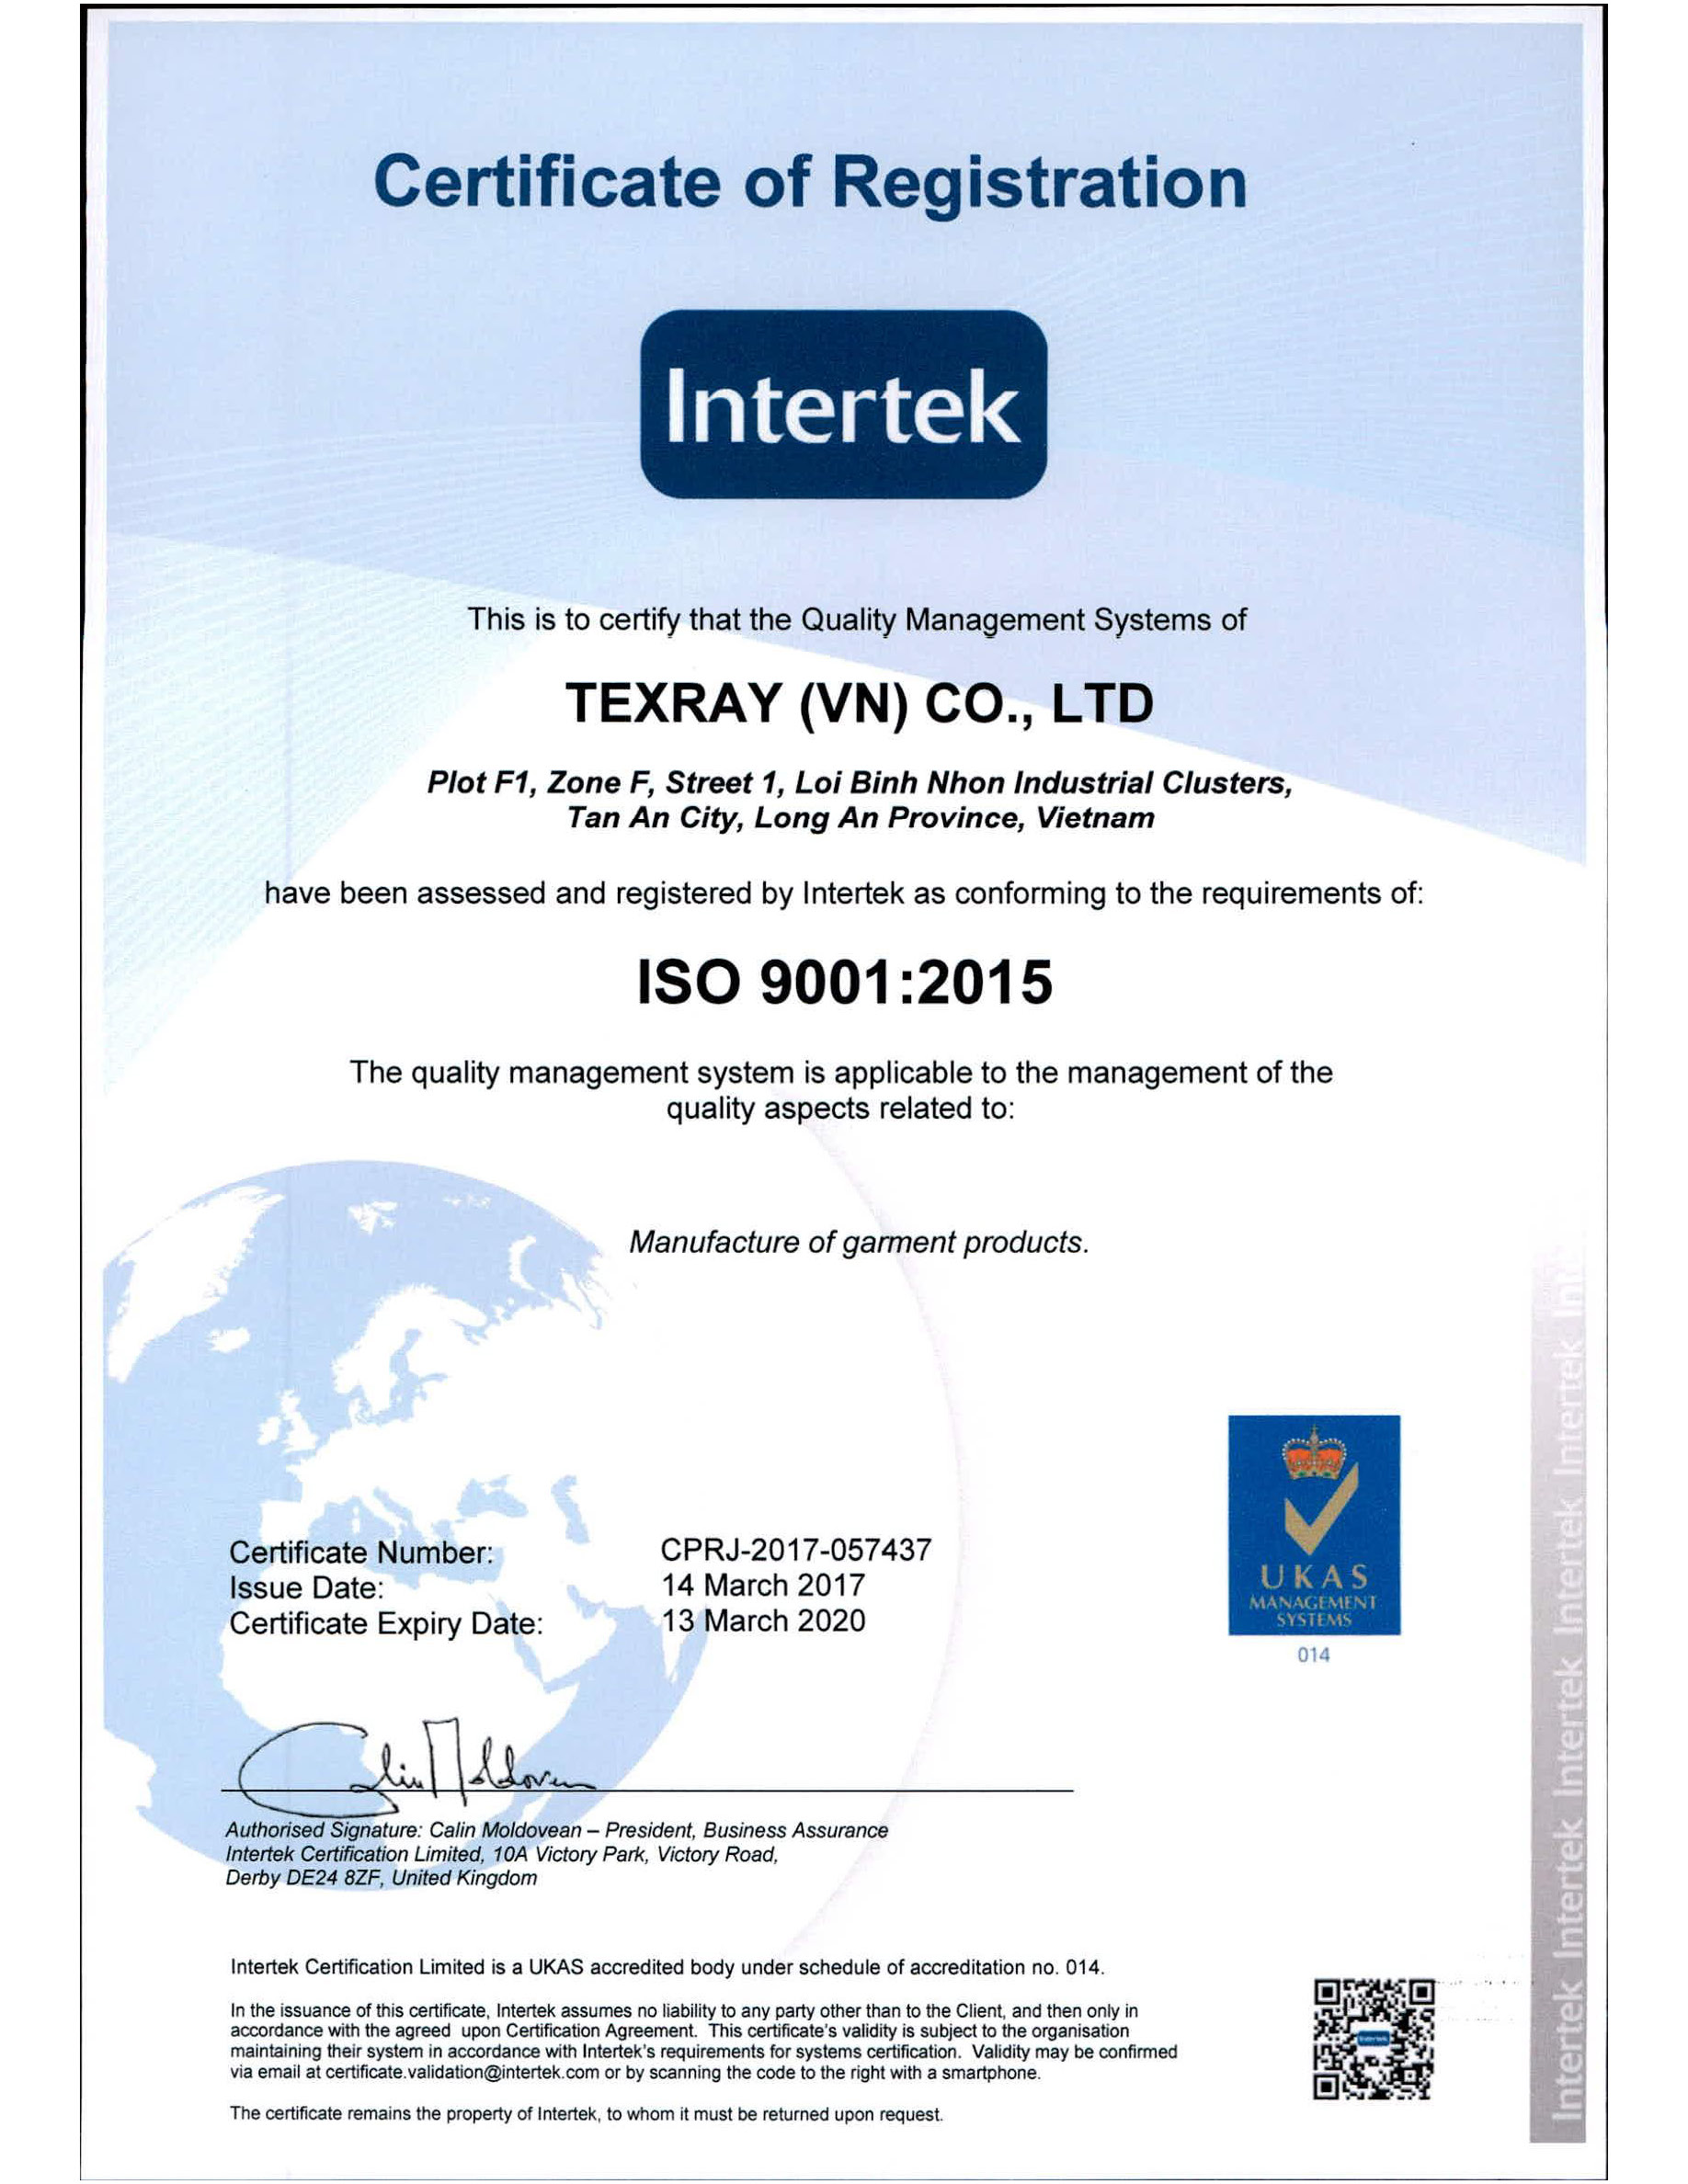 Certification And Awards Tex Ray